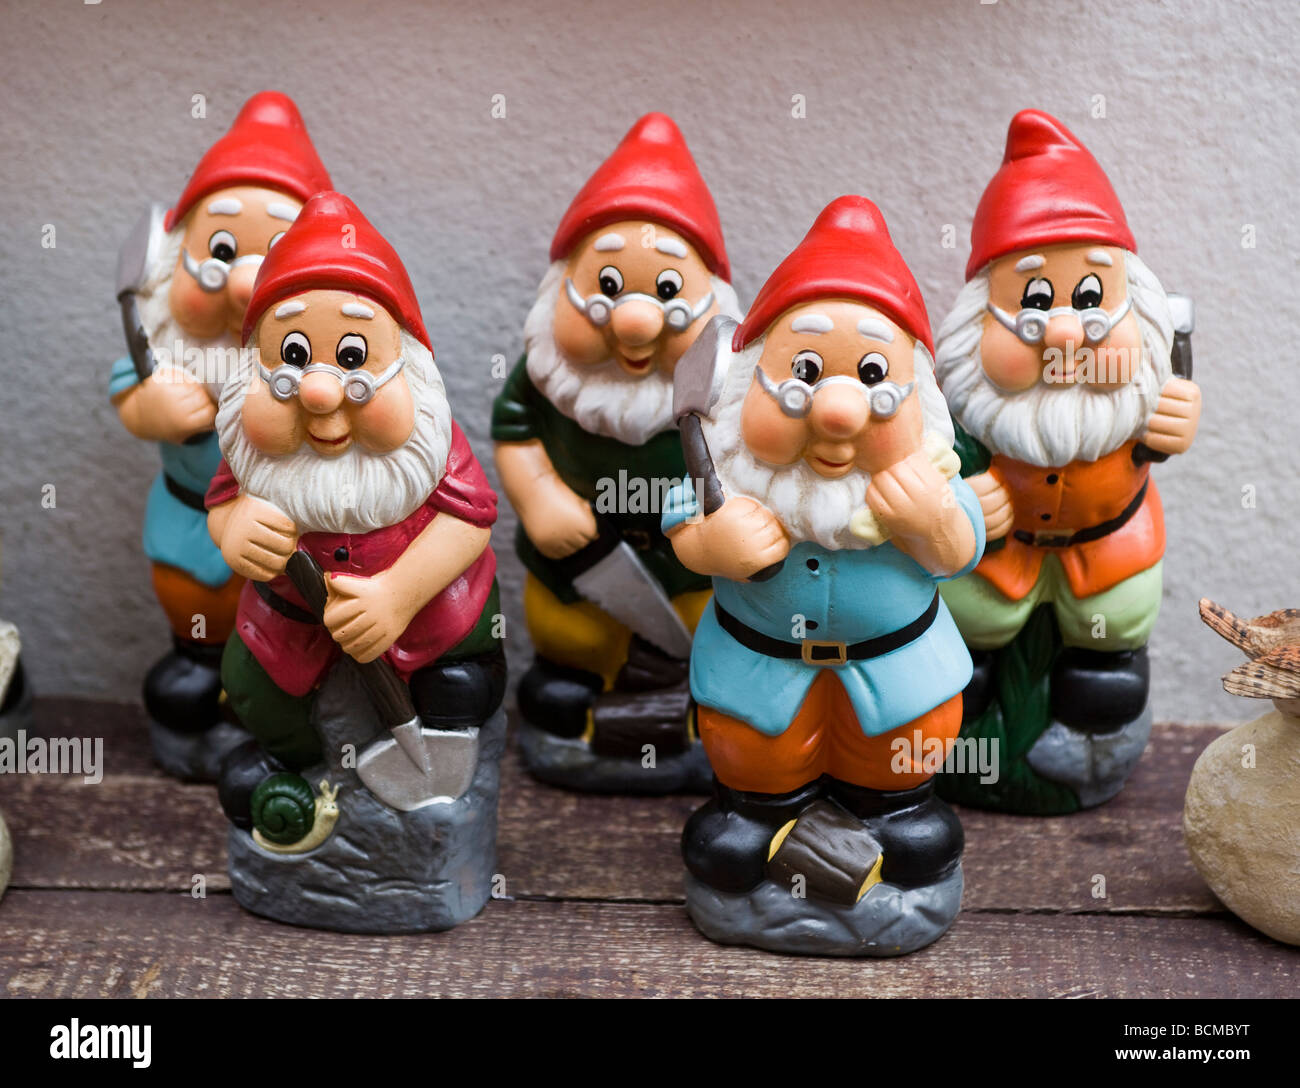 Five Garden Gnomes On Sale In Lynton North Devon England Stock